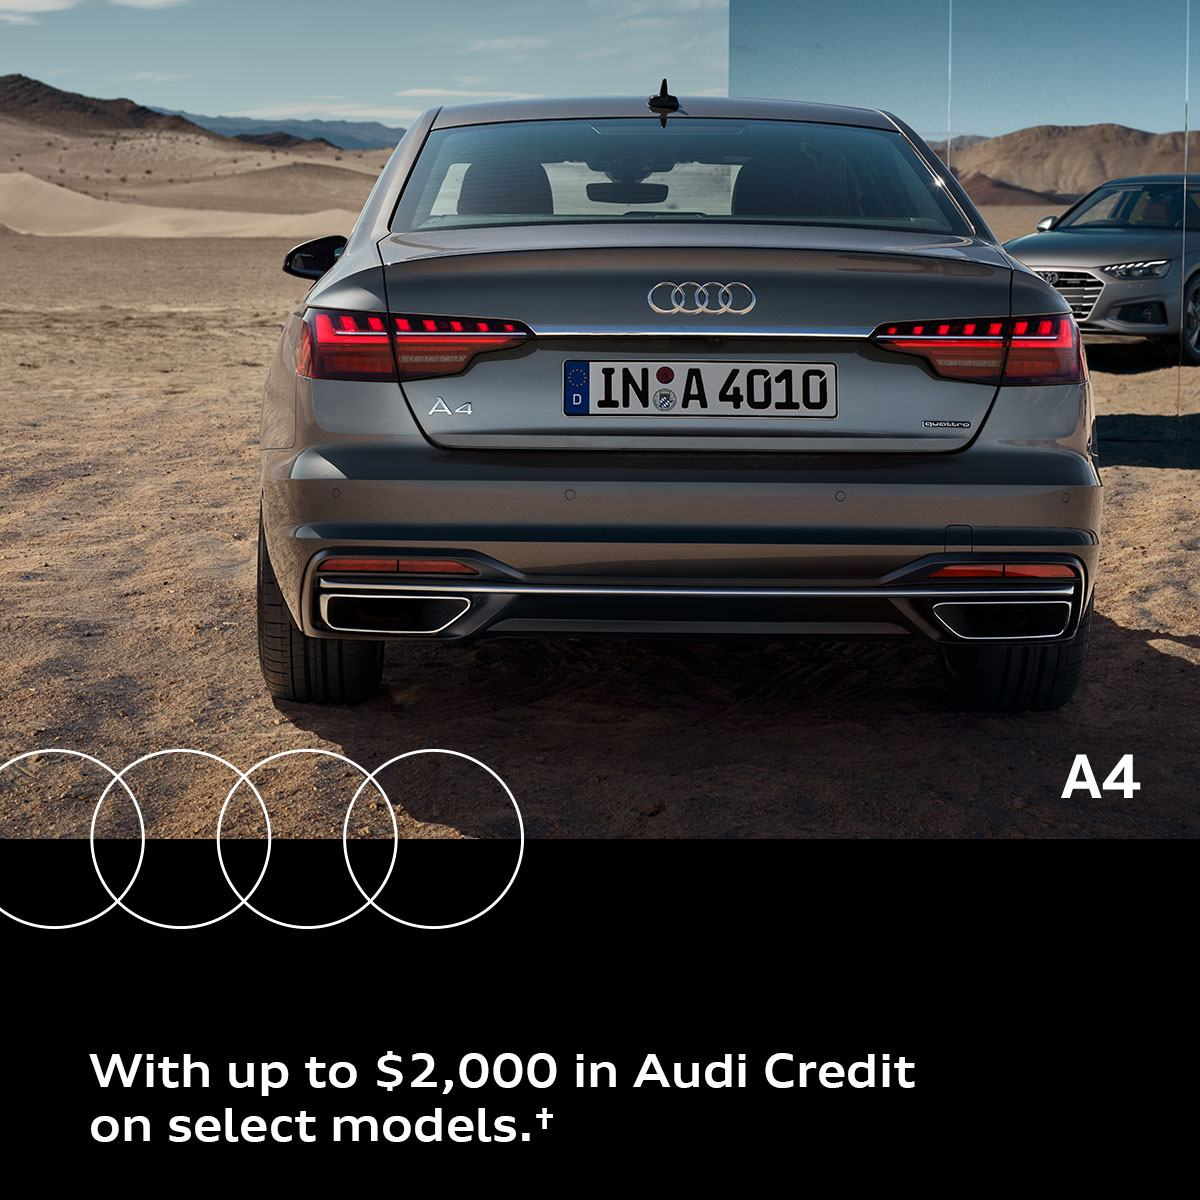 The Summer of Audi Event – A4